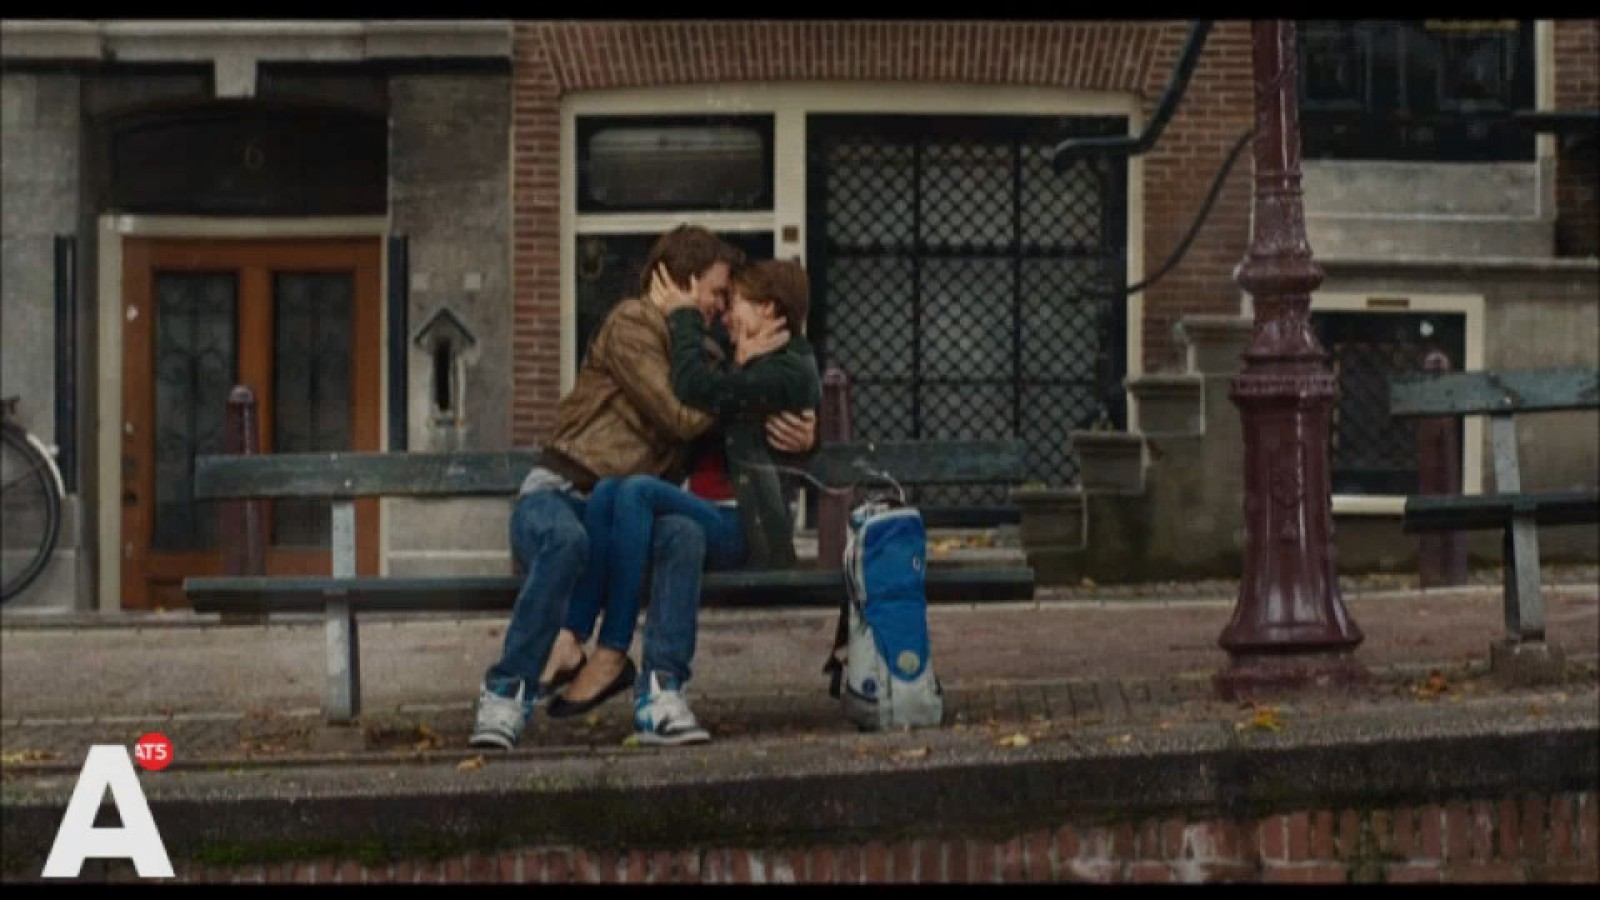 The Fault In Our Stars Bankje.Fans The Fault In Our Stars Teleurgesteld Om Bankje At5